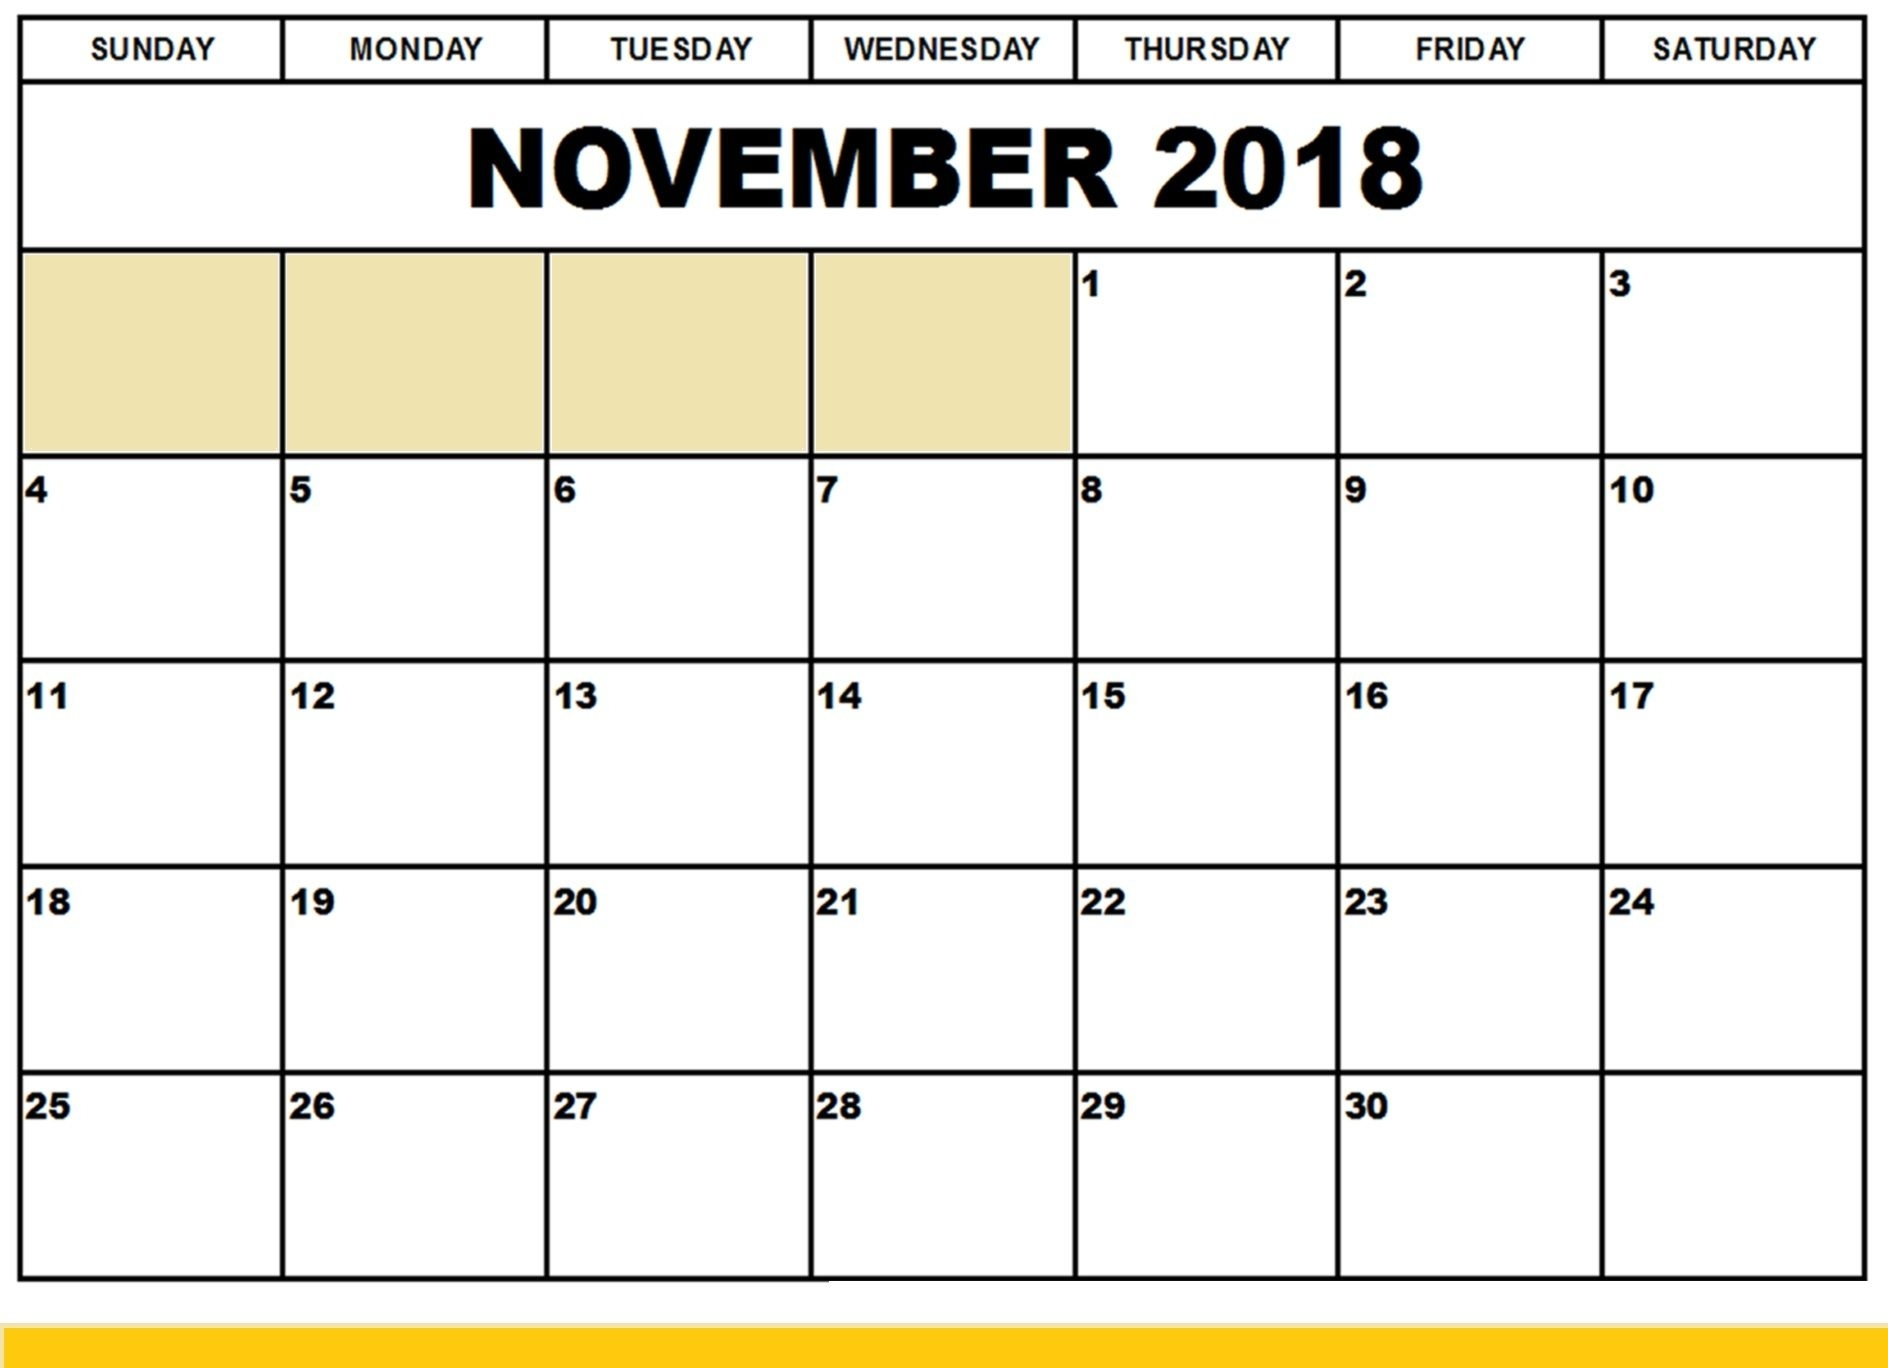 November 2018 Calendar Uk Free Download #calendar #download